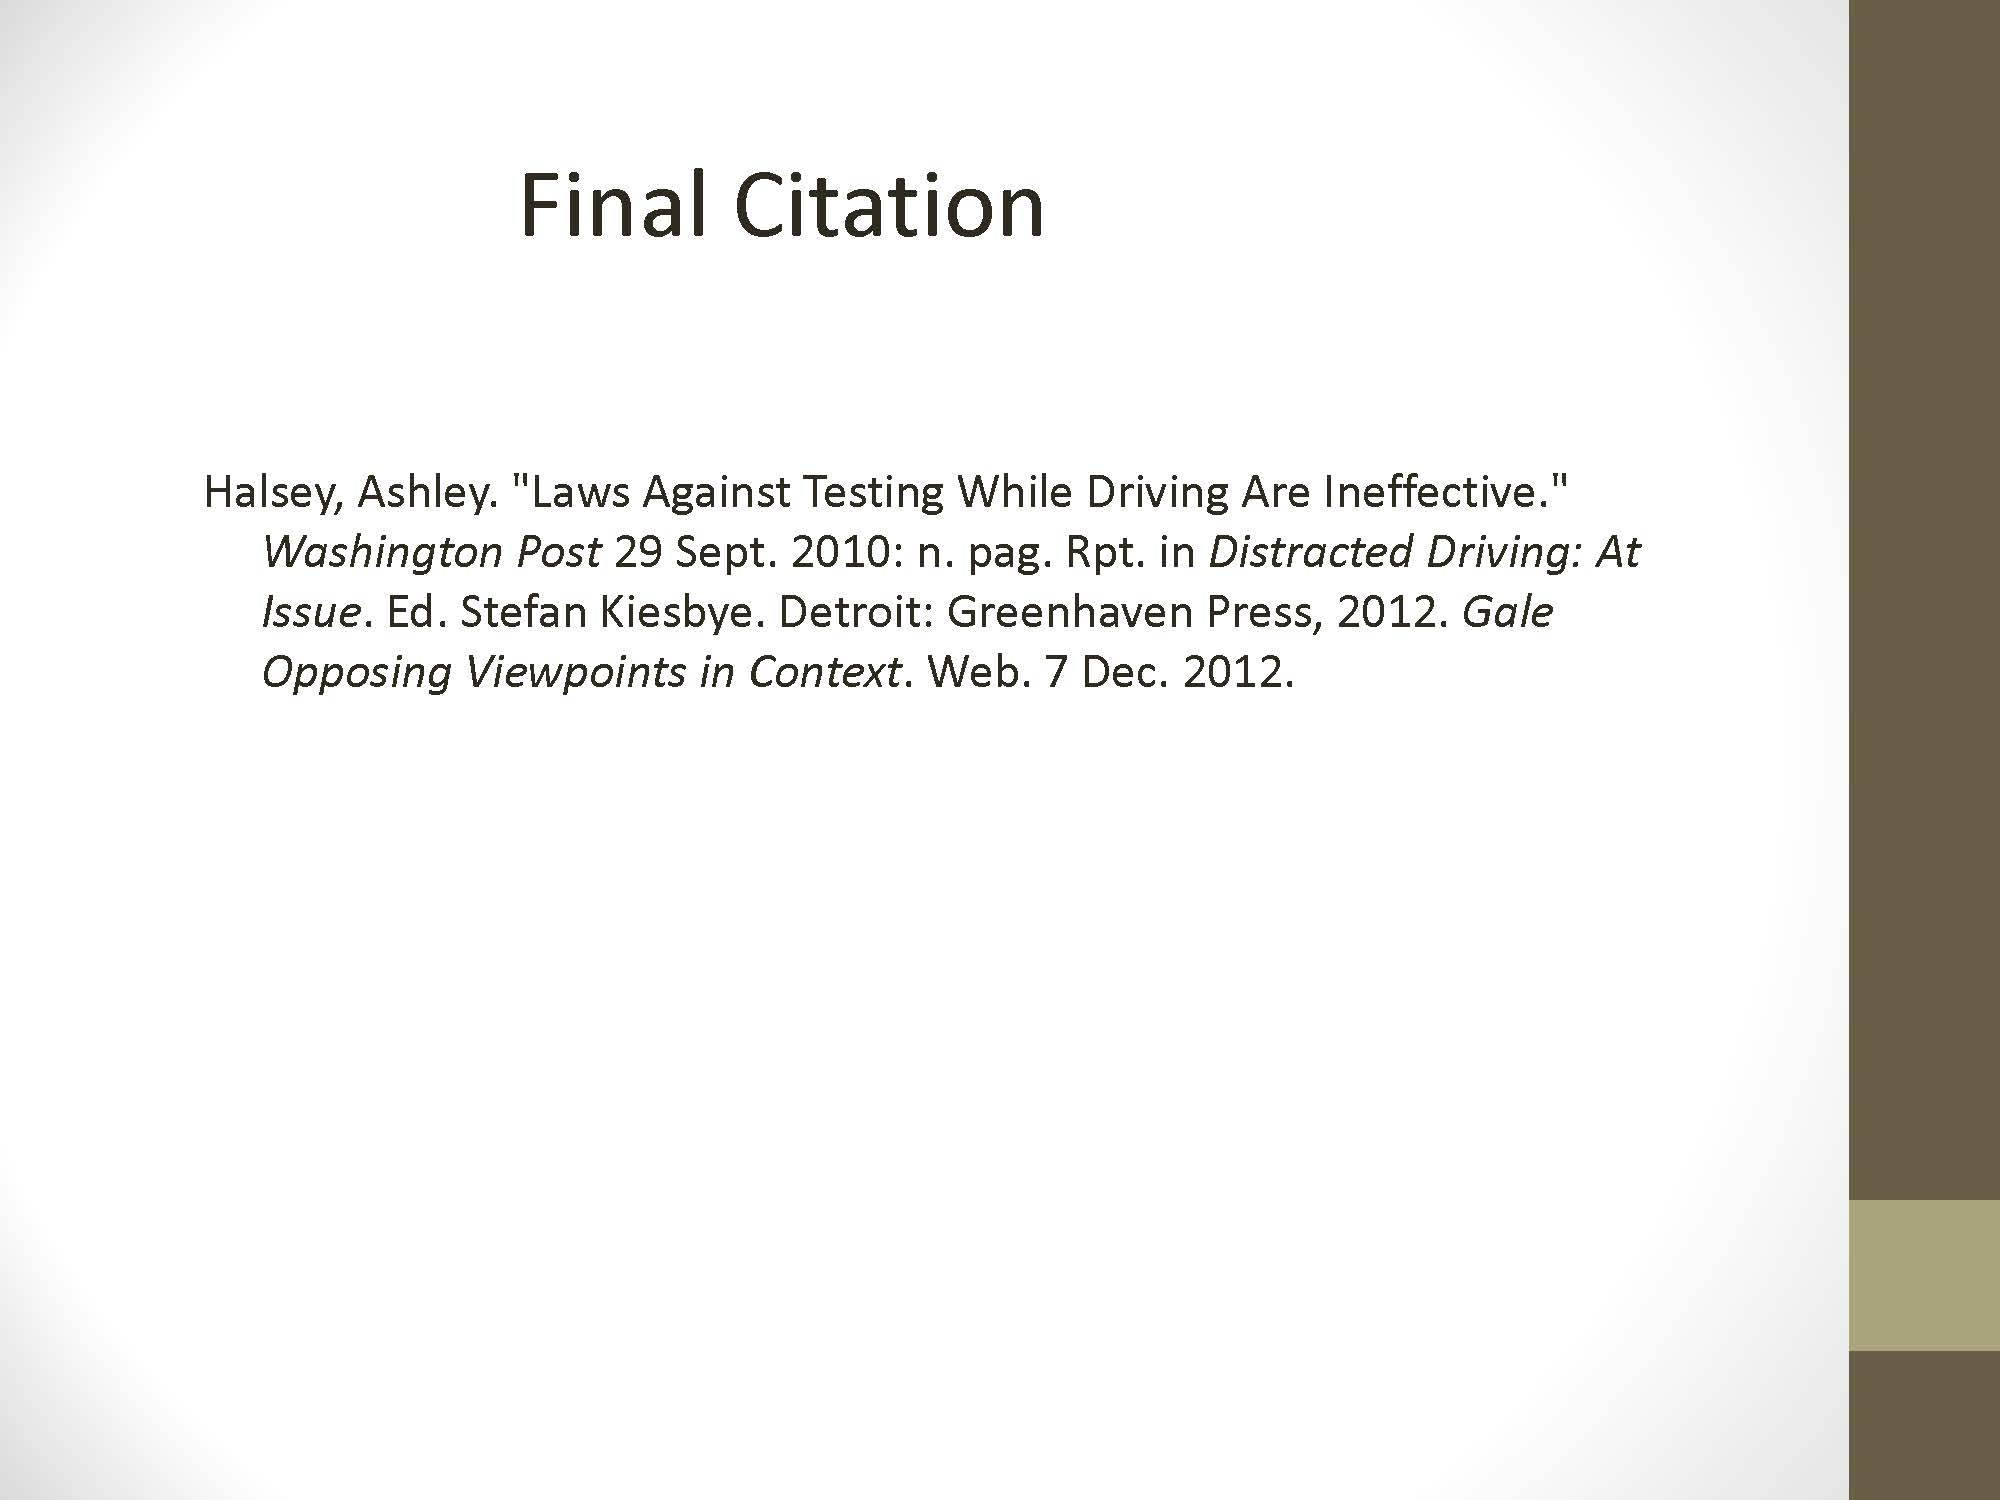 Final Citation of a Newspaper reprinted in an Anthology, located in an Electronic Database